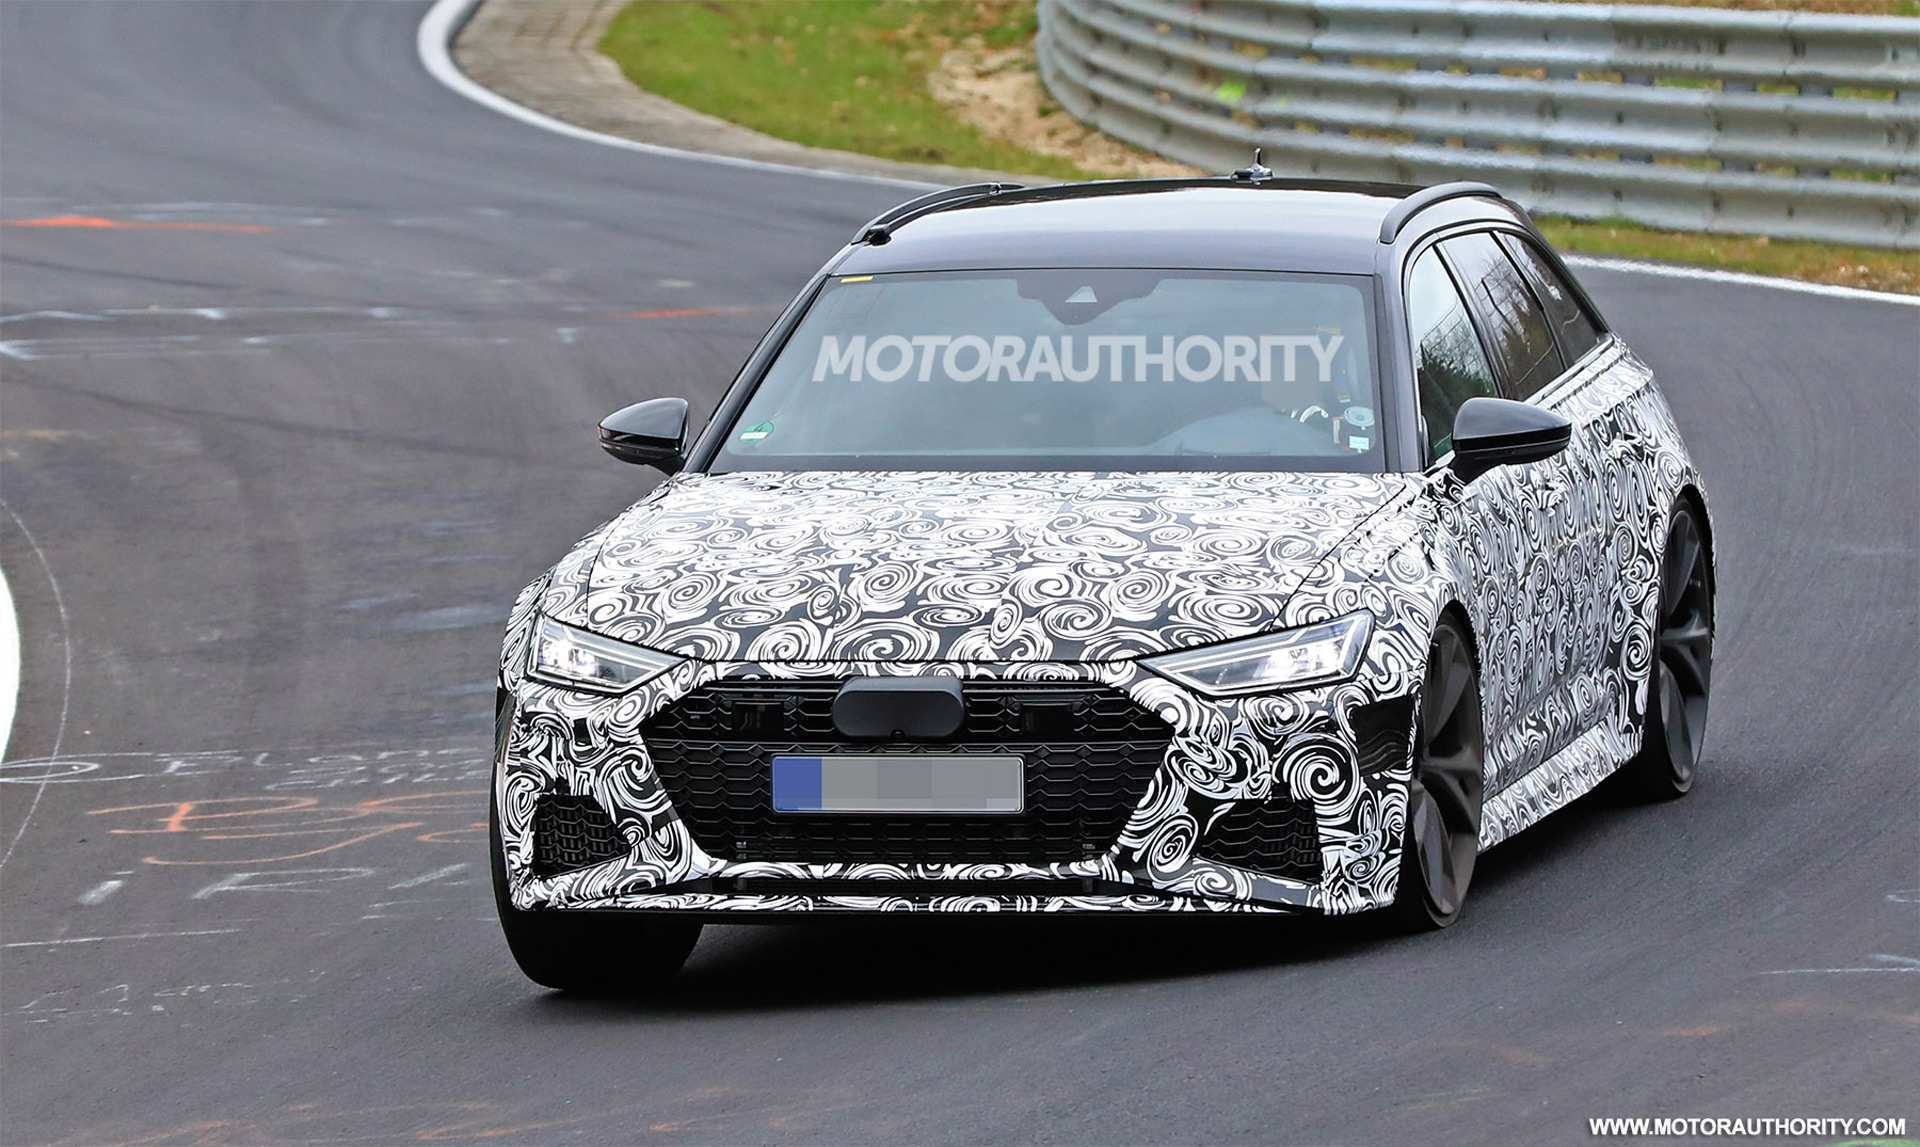 82 The Best 2020 Audi Rs6 Wagon Price And Release Date